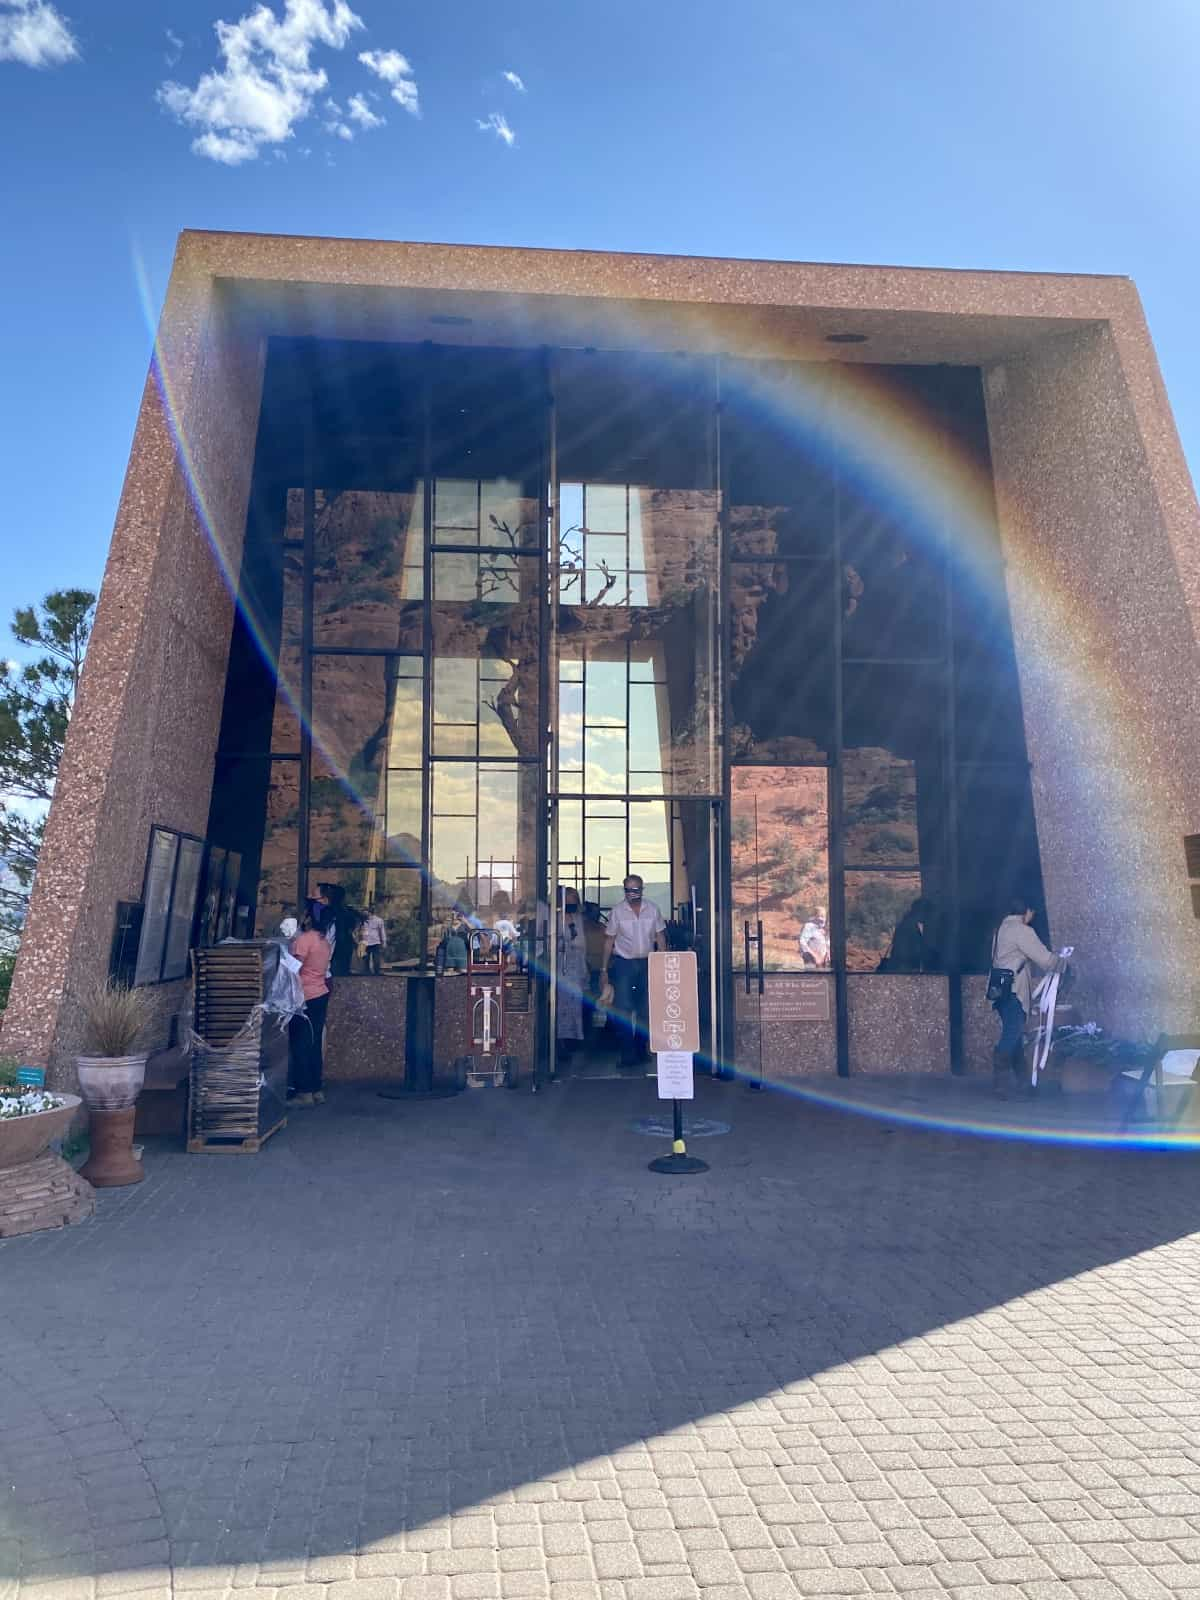 Visiting the Chapel of the Holy Cross in Sedona, Arizona | This unique church is an architectural gem built by a student of Frank Lloyd Wright, and an iconic view in Sedona's landscape. What to know for your own visit, when to go, and more. Things to do in Sedona. #sedona #franklloydwright #chapeloftheholycross #arizona